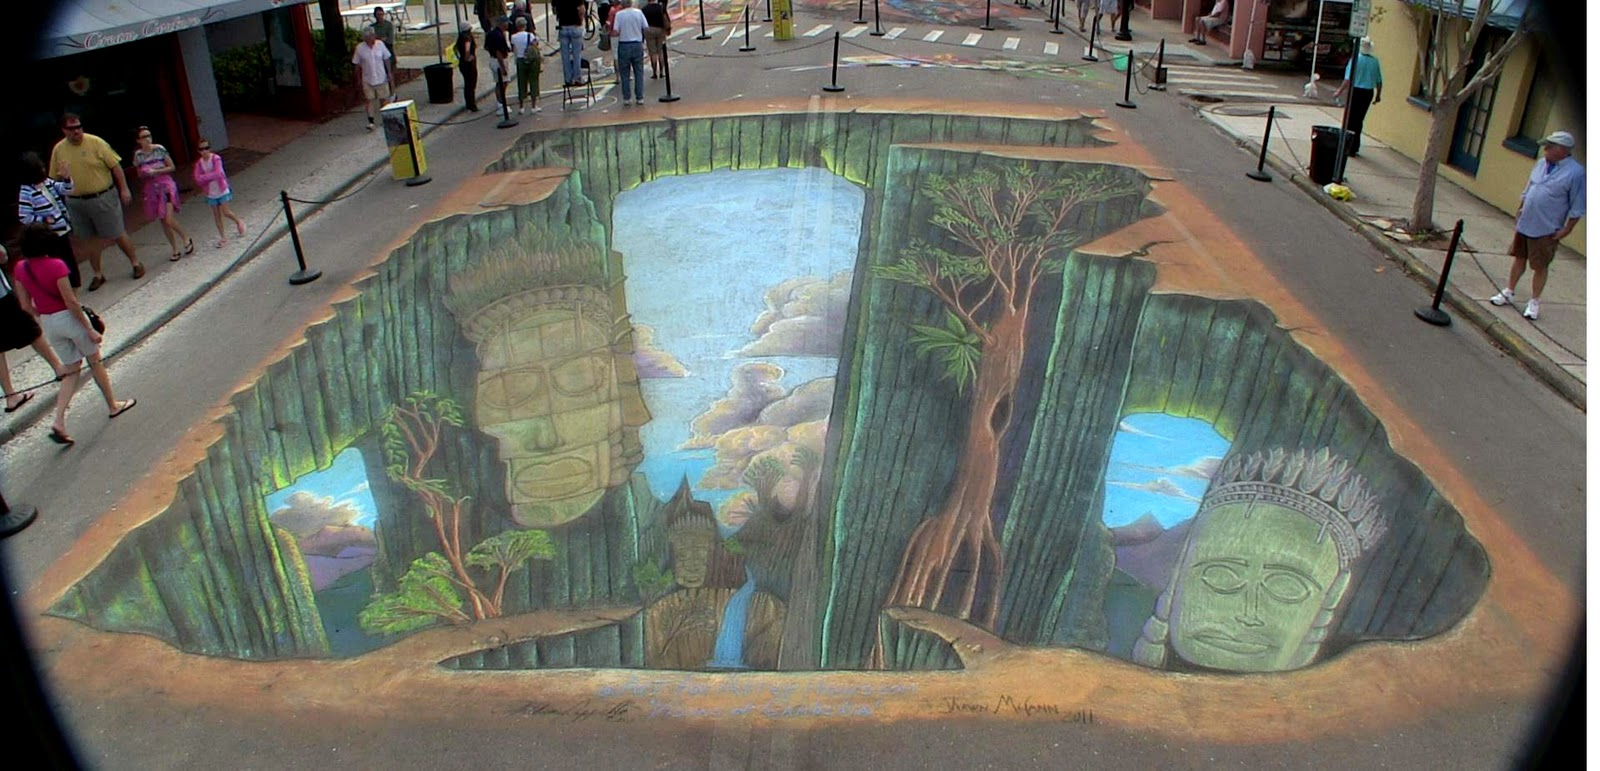 Shawn mccann street painting 3d wall murals regulare for 3d mural art in india